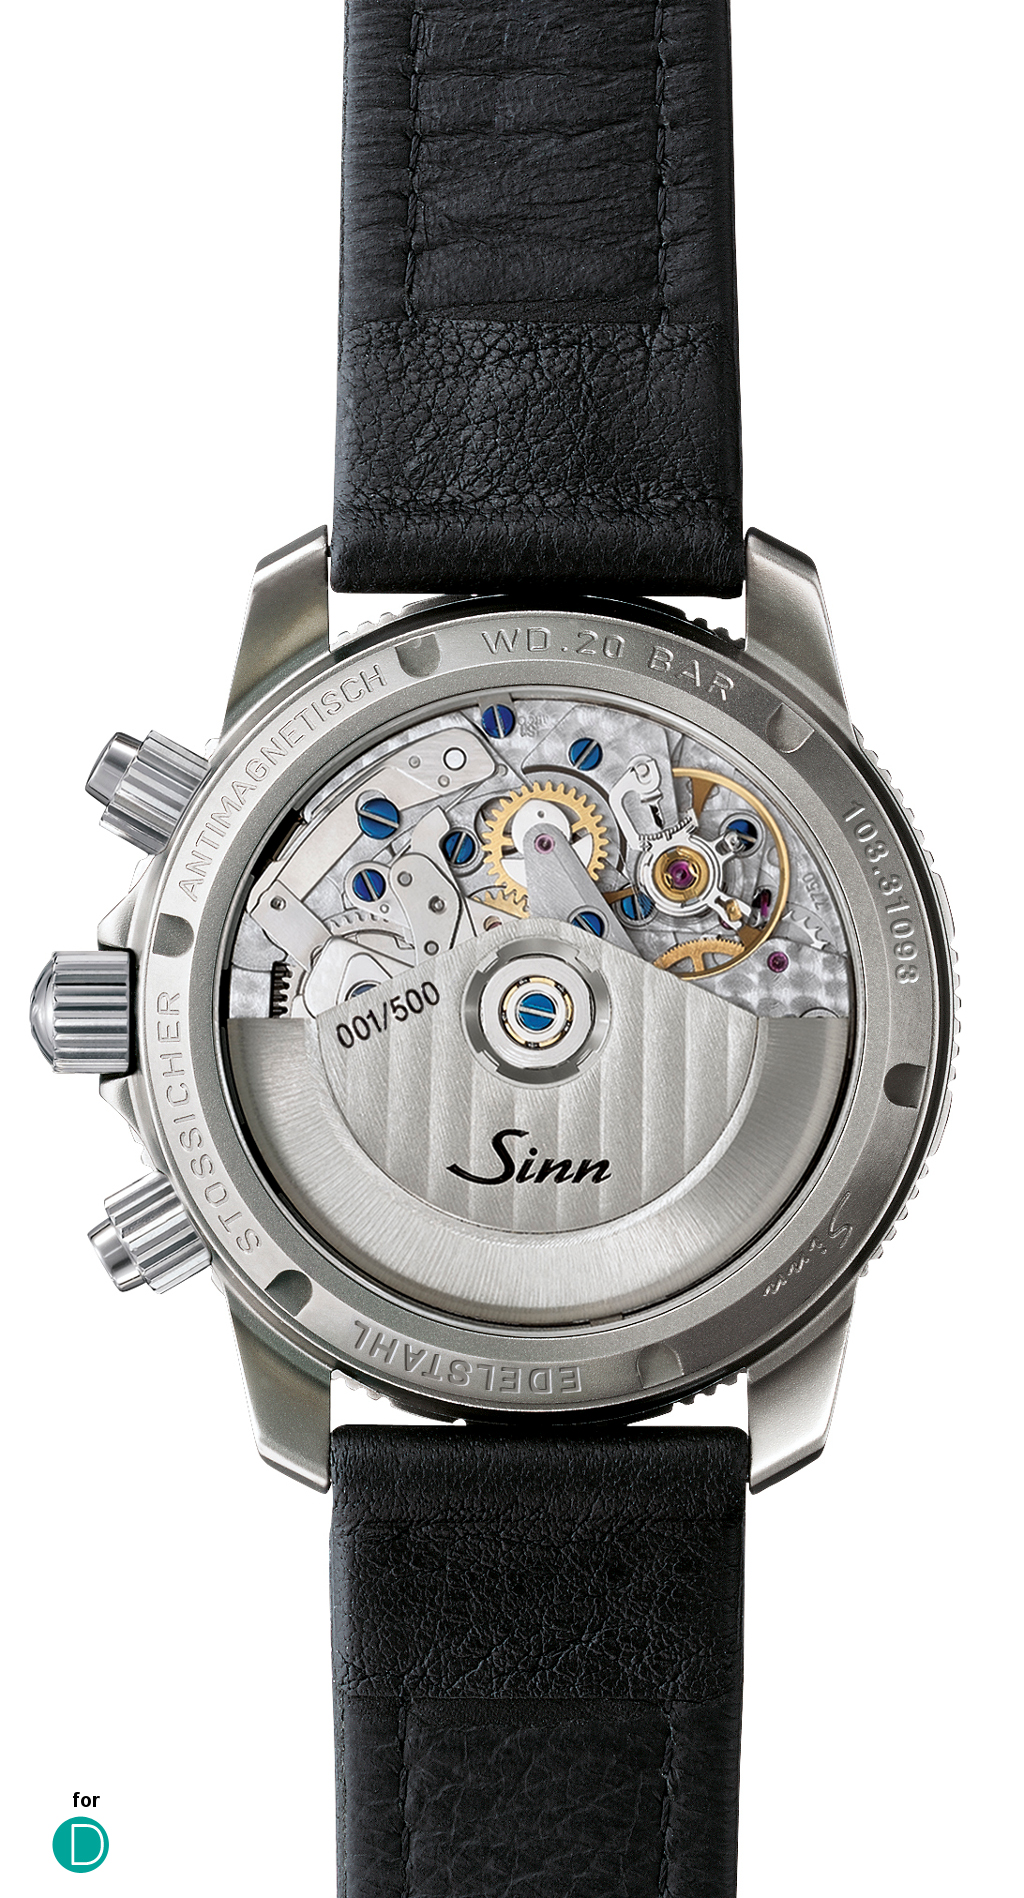 The transparent back of the Sinn 103 A Sa B, featuring the ubiquitous Valjoux 7750 movement.